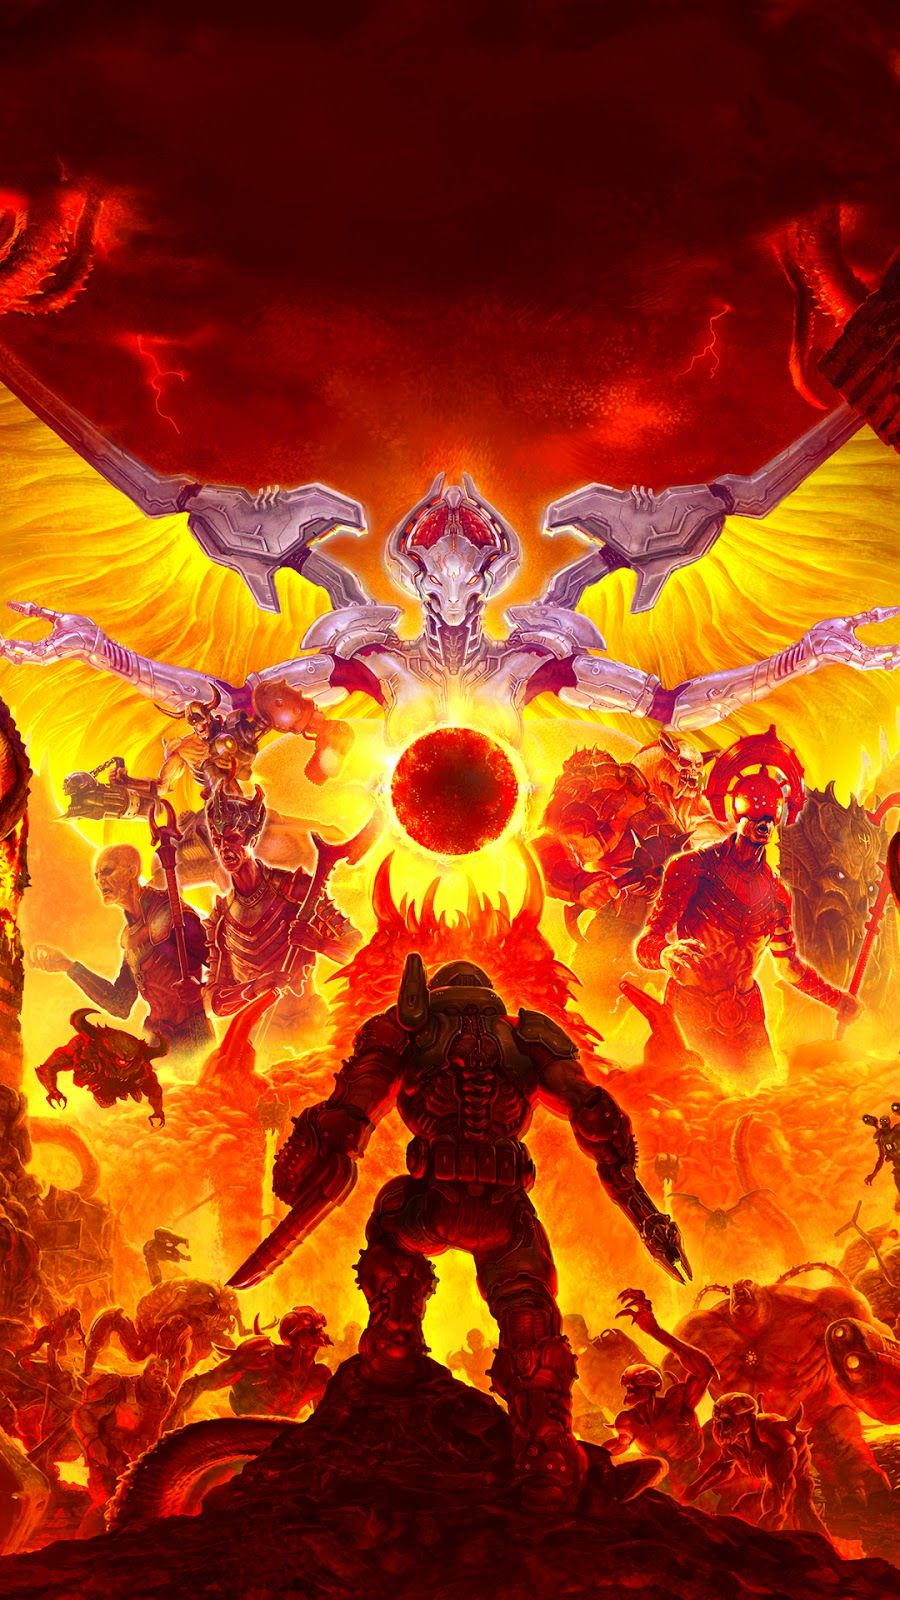 Doom Eternal Video Game Mobile Wallpaper In 2020 Doom Videogame